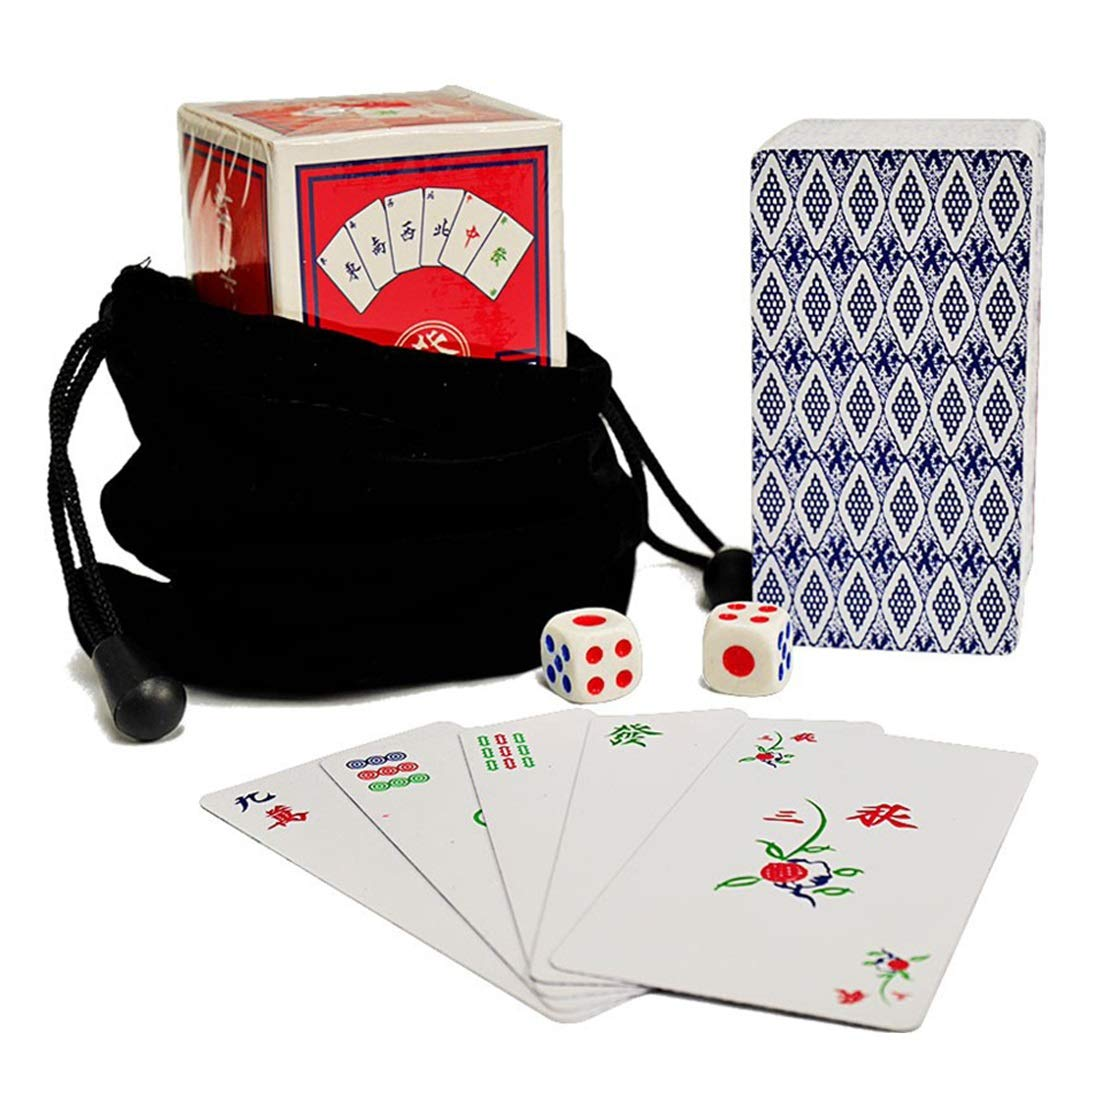 Hexiansheng Waterproof Portable Plastic Mahjong Playing Cards Set with 2 Dices Flannelette Bag Travel Mahjong Poker Card for Gift Party Family Game ( Size   A )